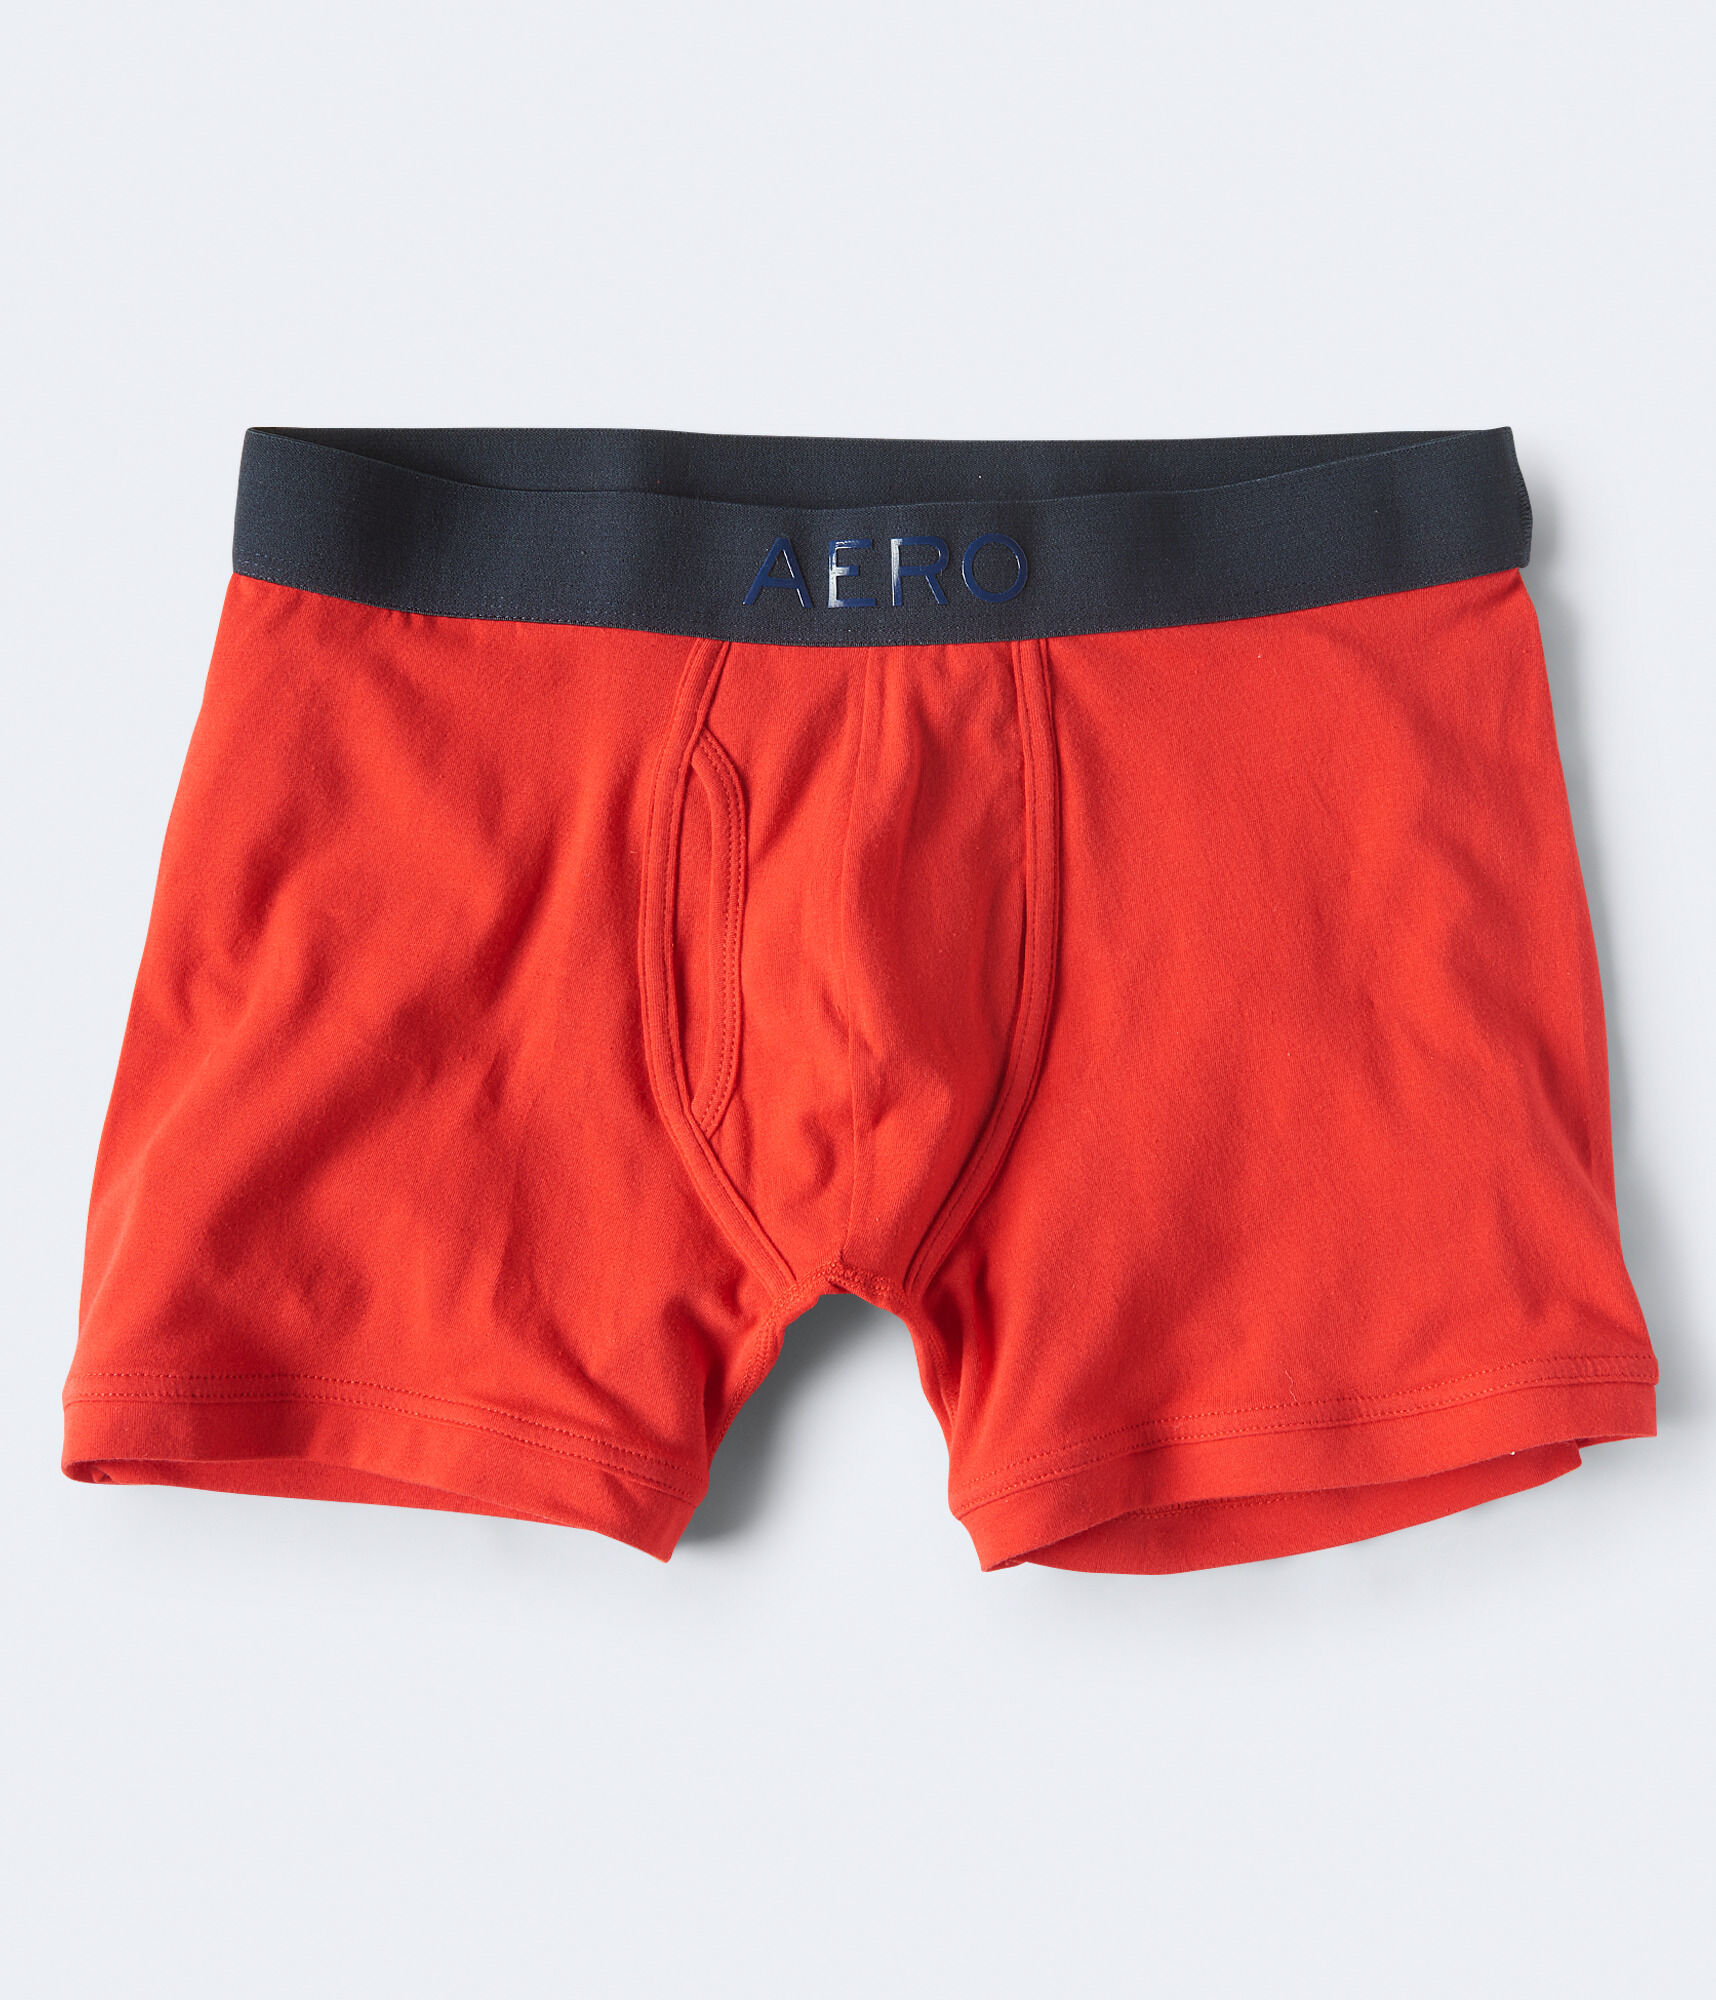 Where to Buy Briefs